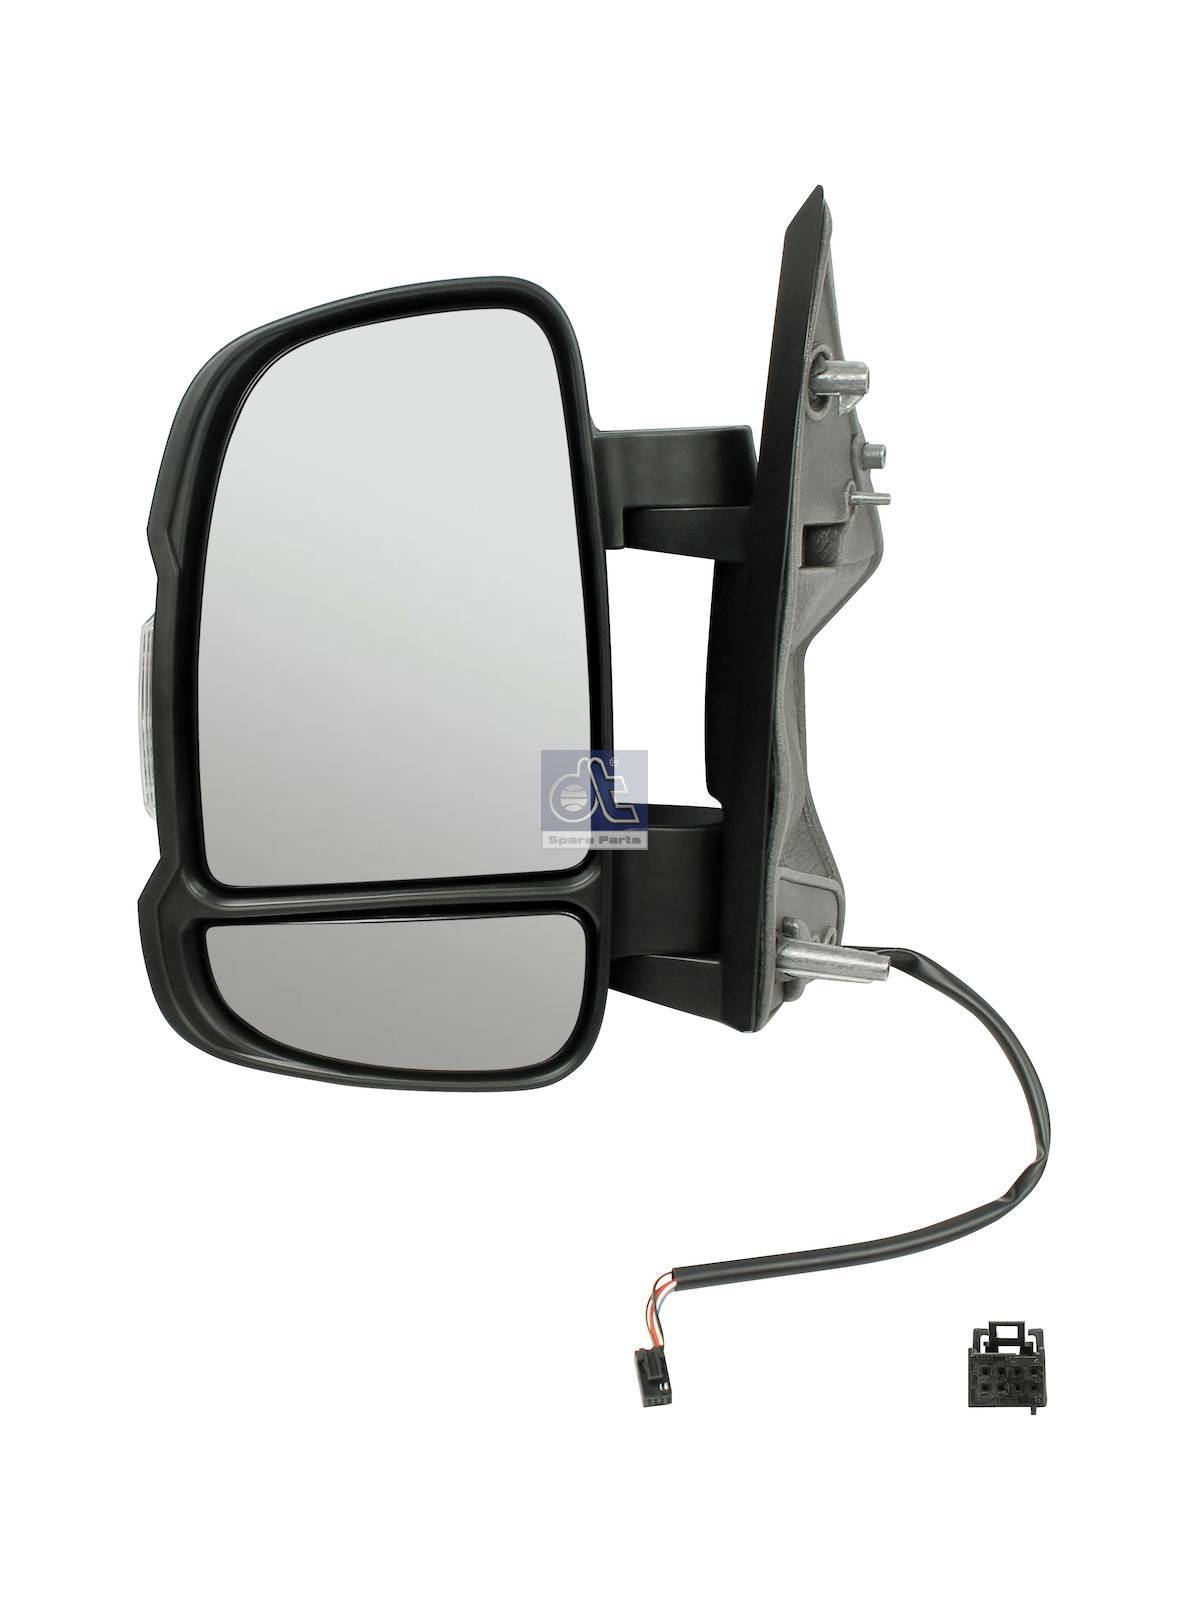 Main mirror, left, heated, electrical